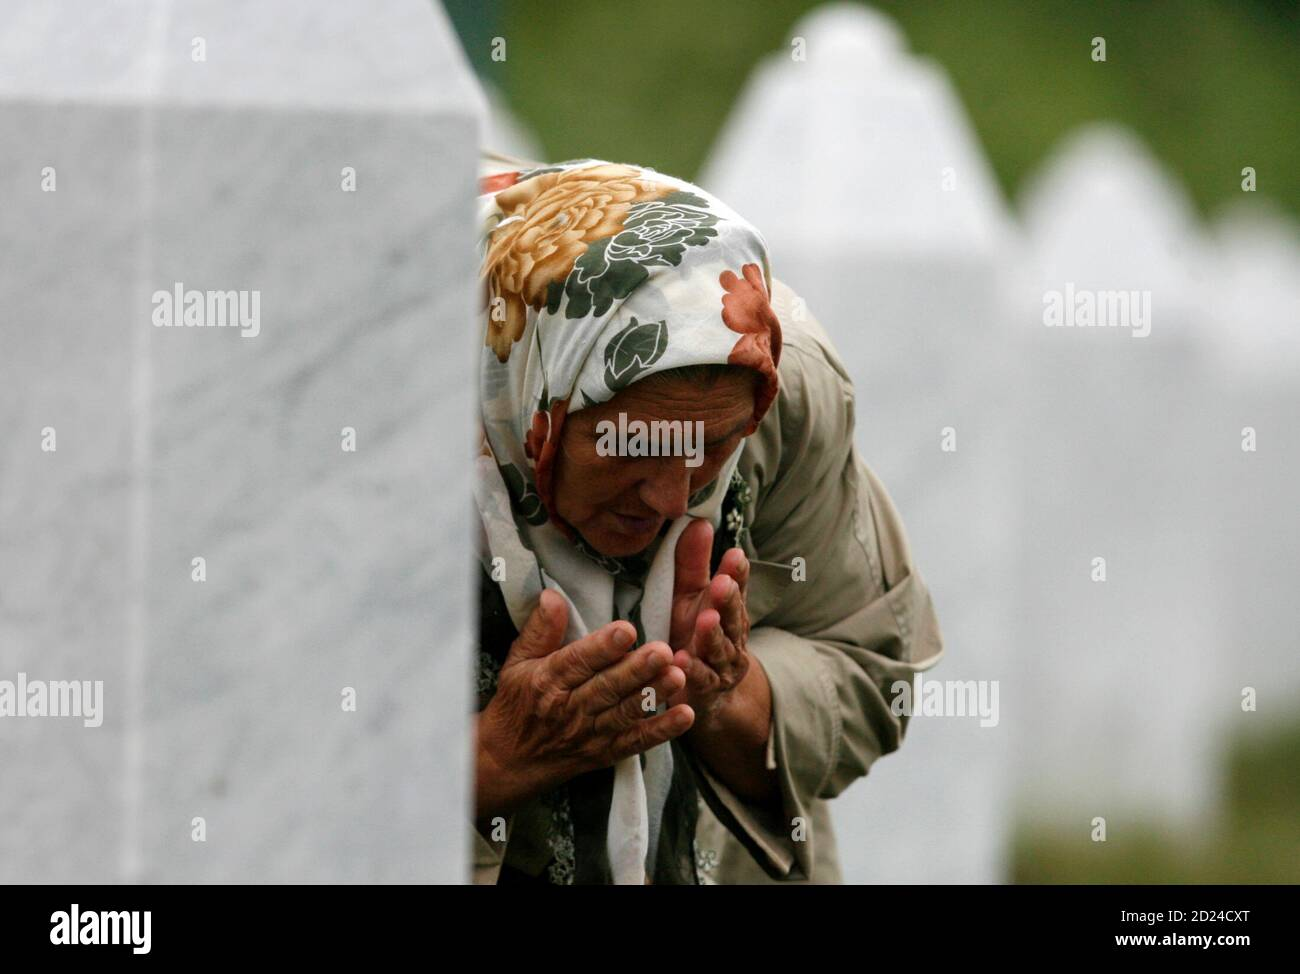 A Bosnian woman who lost a relative in the 1995 Srebrenica massacre prays inside memorial cemetery Potocari near Srebrenica in eastern Bosnia July 22, 2008, after  Bosnian Serb wartime leader Radovan Karadzic's arrest in Belgrade. Karadzic, wanted for genocide and crimes during the Bosnian war, was arrested near Belgrade after 11 years on the run, in disguise and working as a doctor. Karadzic's arrest was one of the main conditions of Serbian progress towards European Union membership and may be enough to secure Serbia closer ties with the EU and possibly the status of membership candidate sta Stock Photo